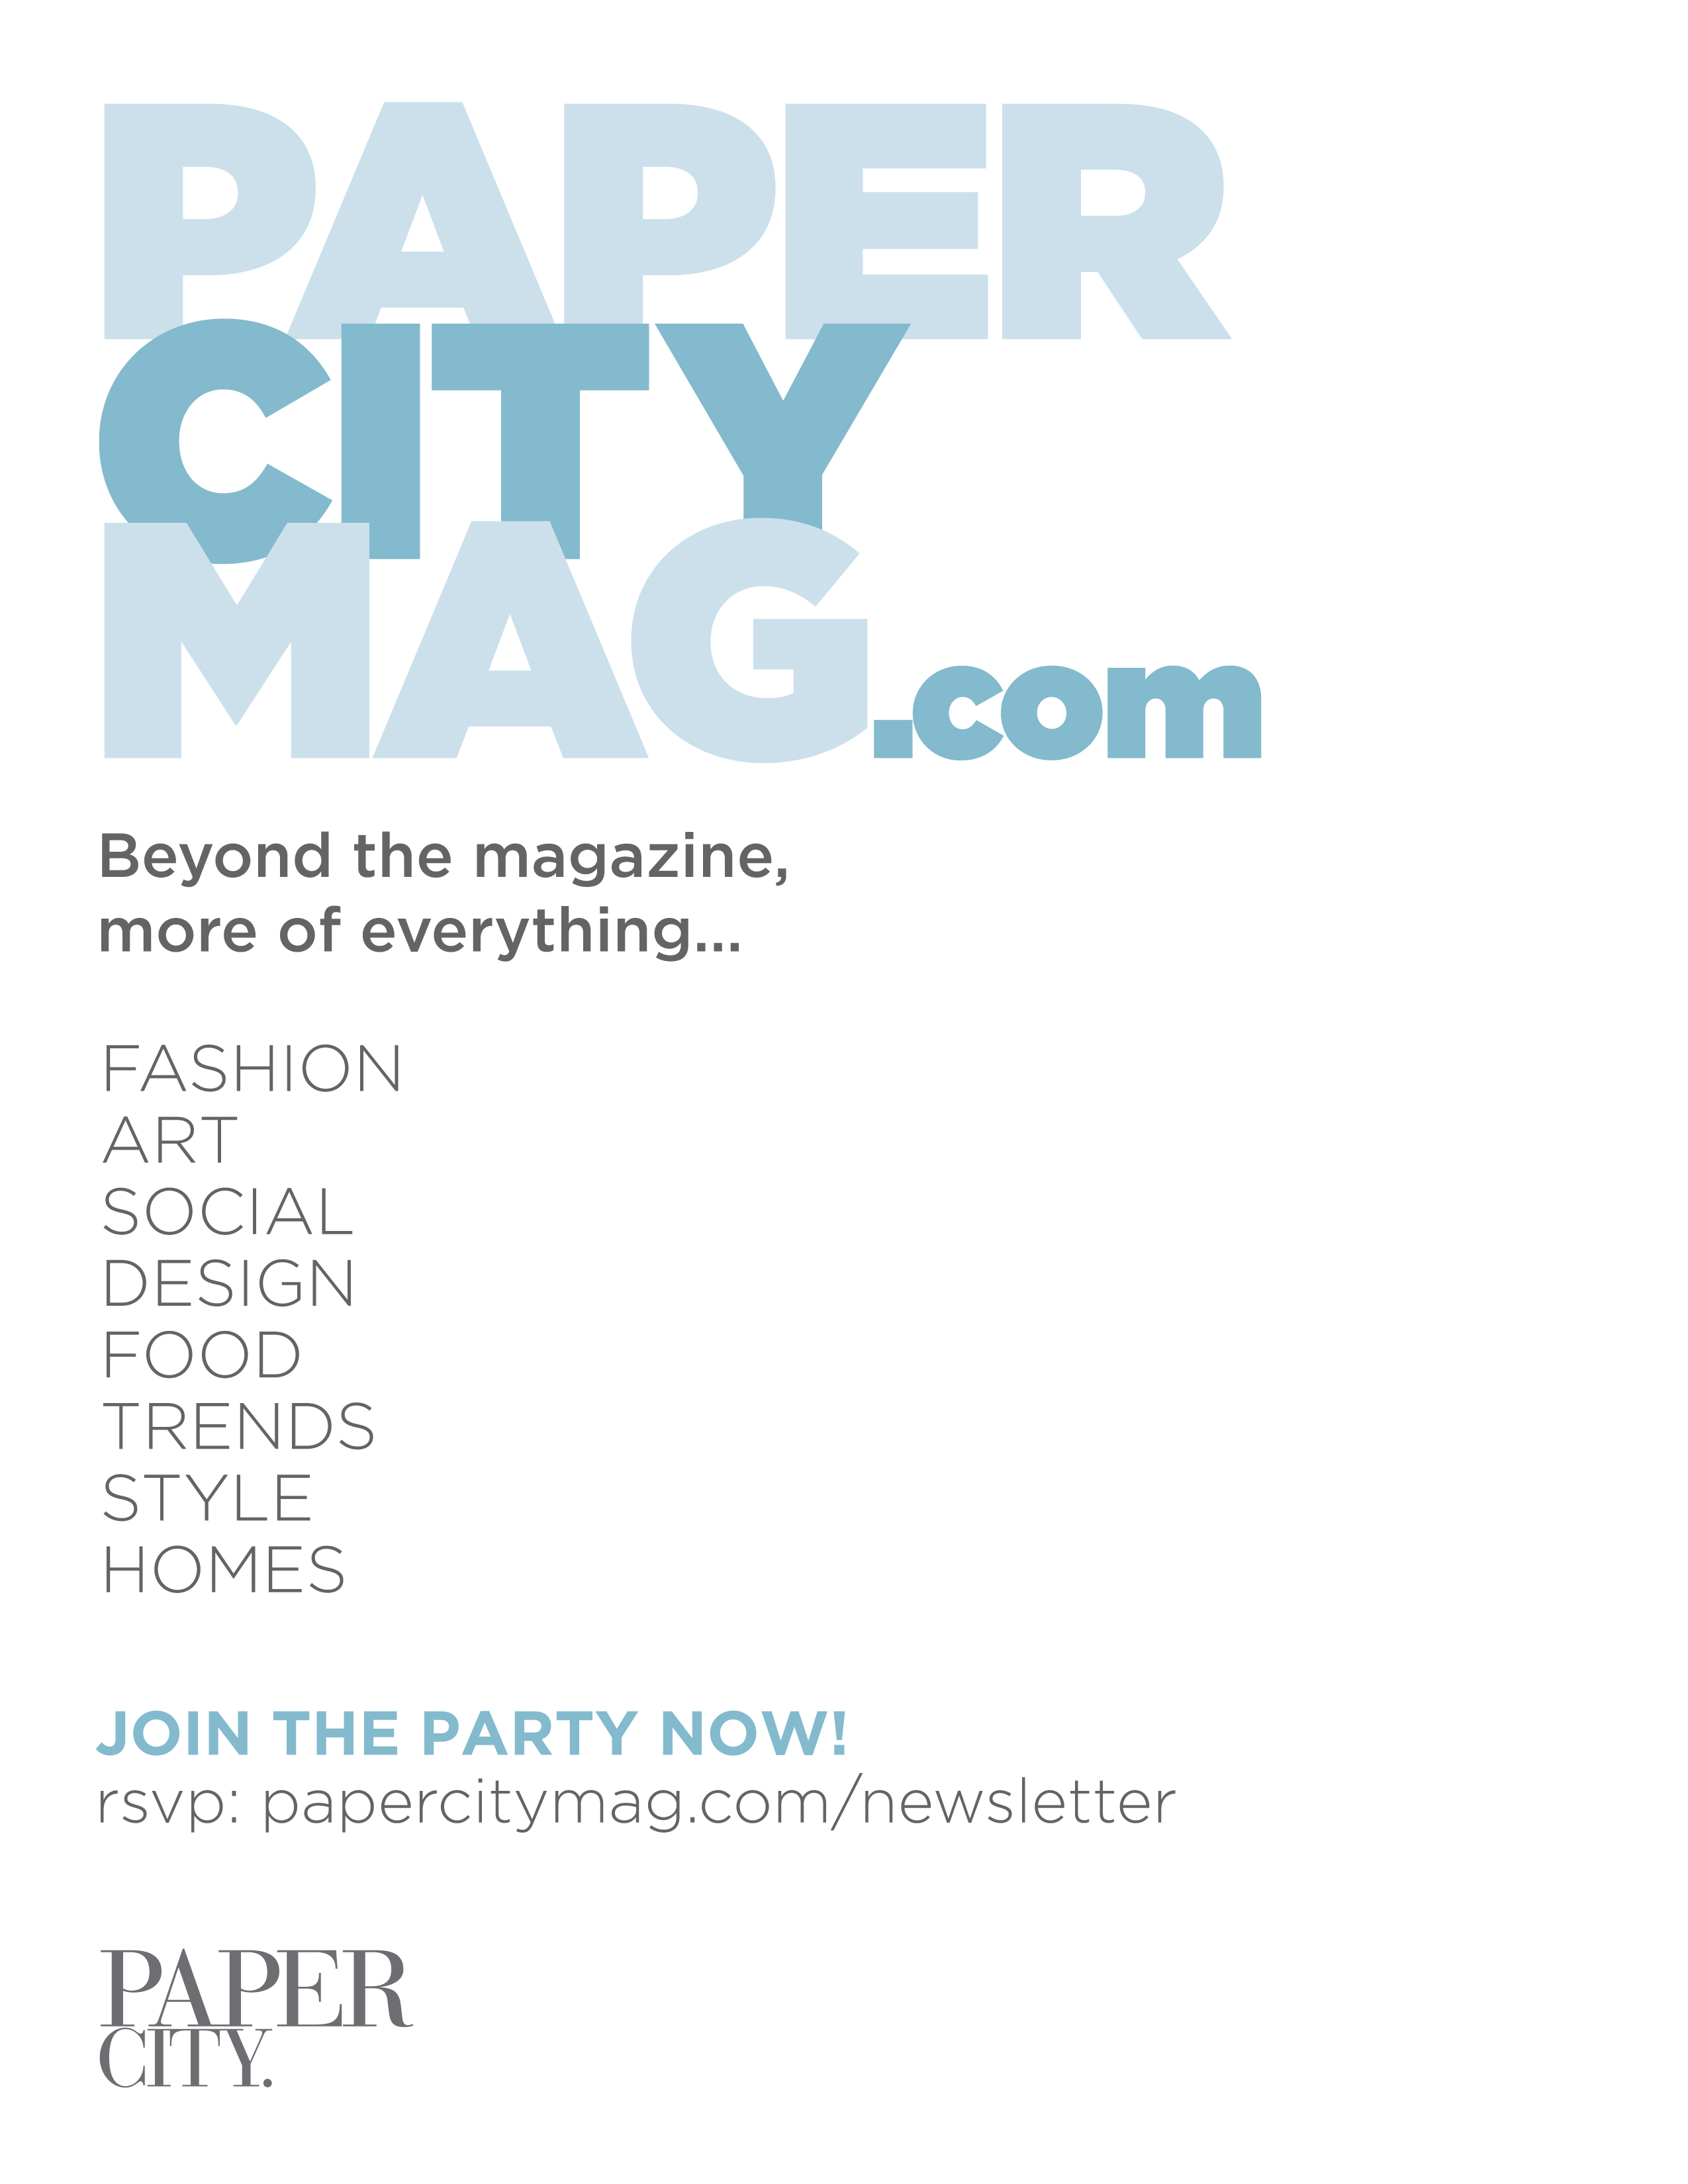 advertising papercity magazine papercity papercitymag com